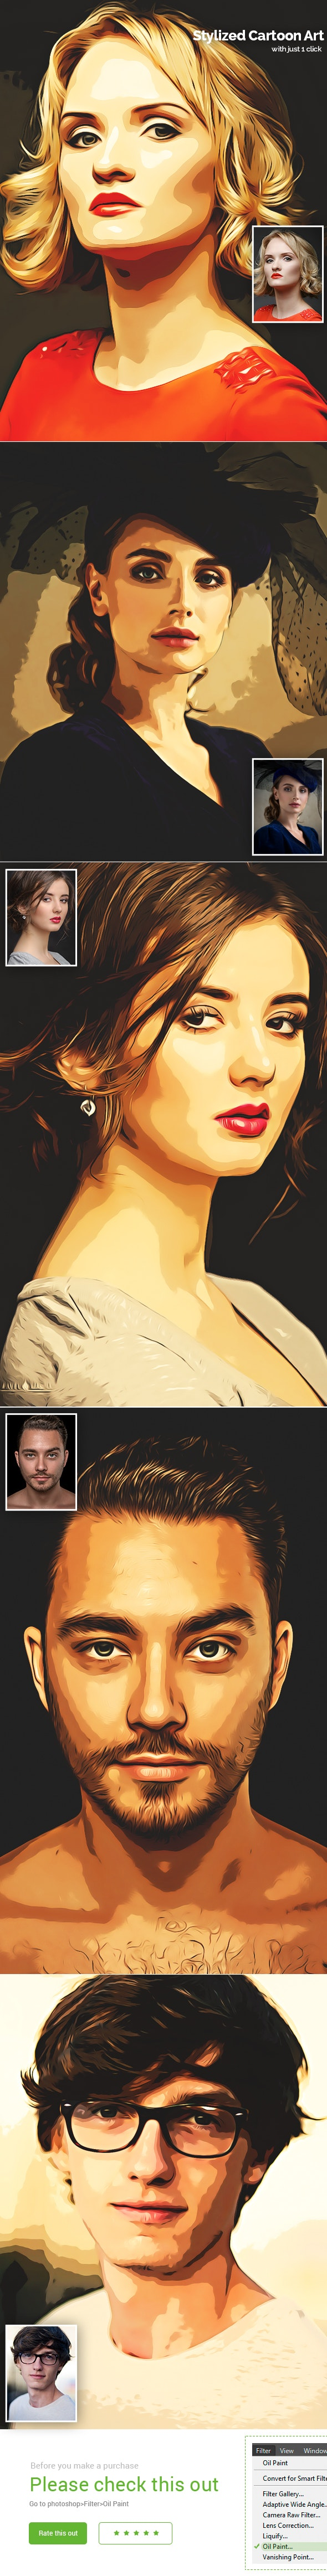 Stylized Cartoon Art - Photo Effects Actions